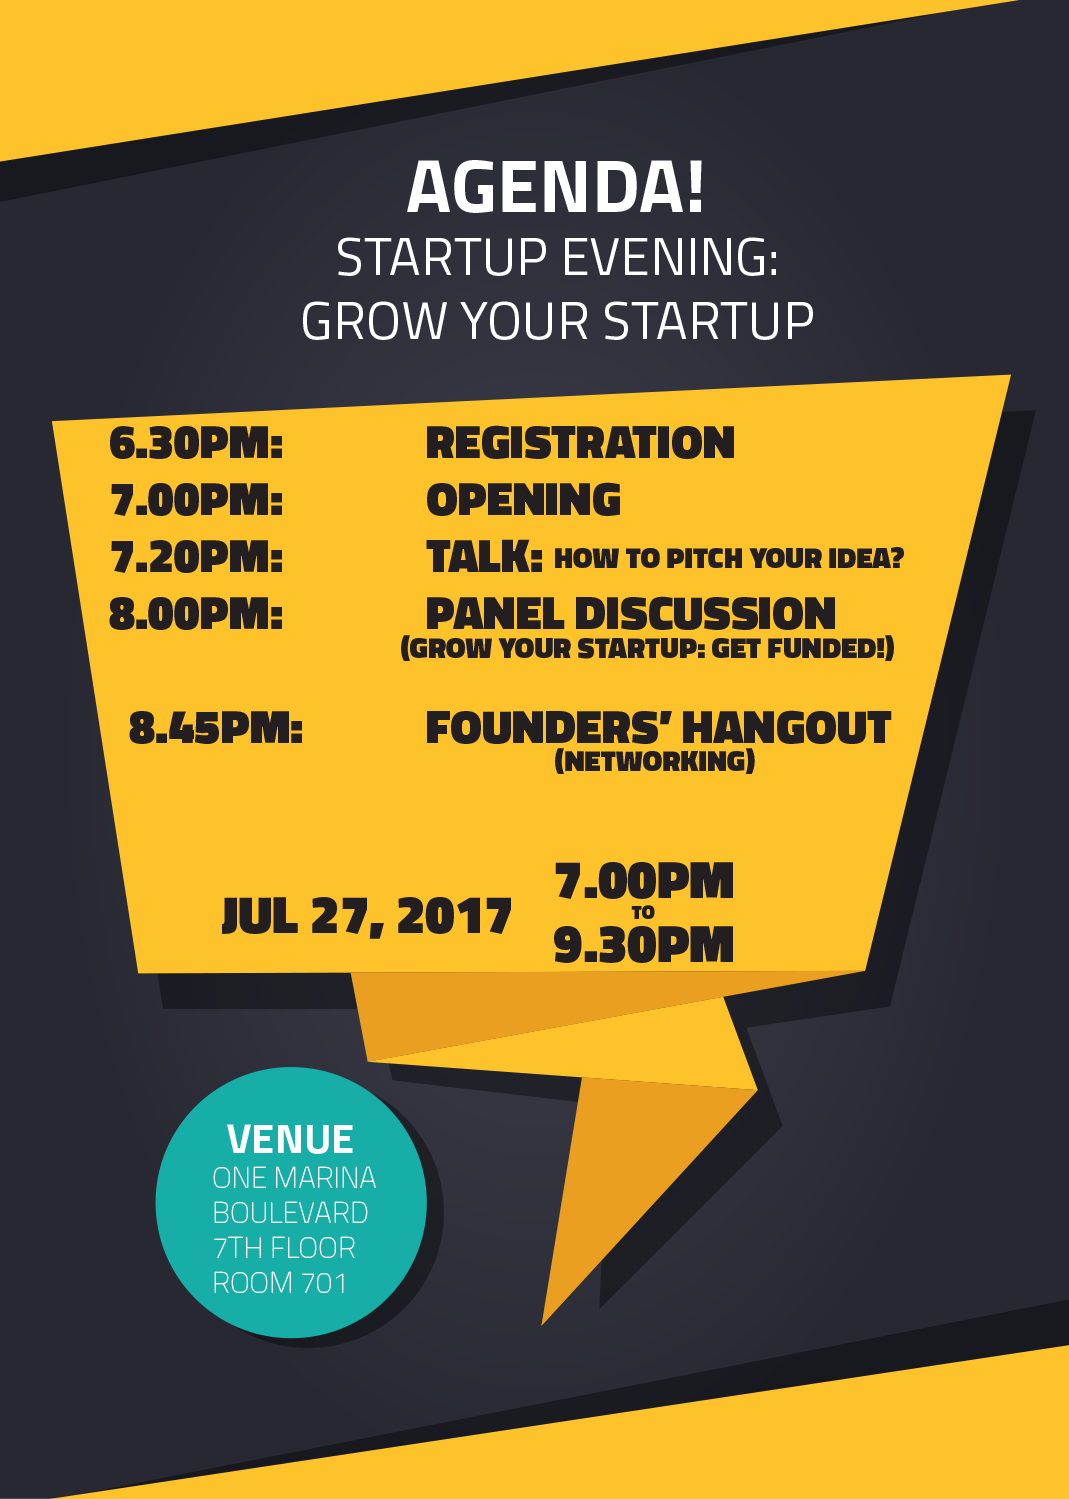 Fivbrain: Grow Your Startup: Get Funded! Agenda